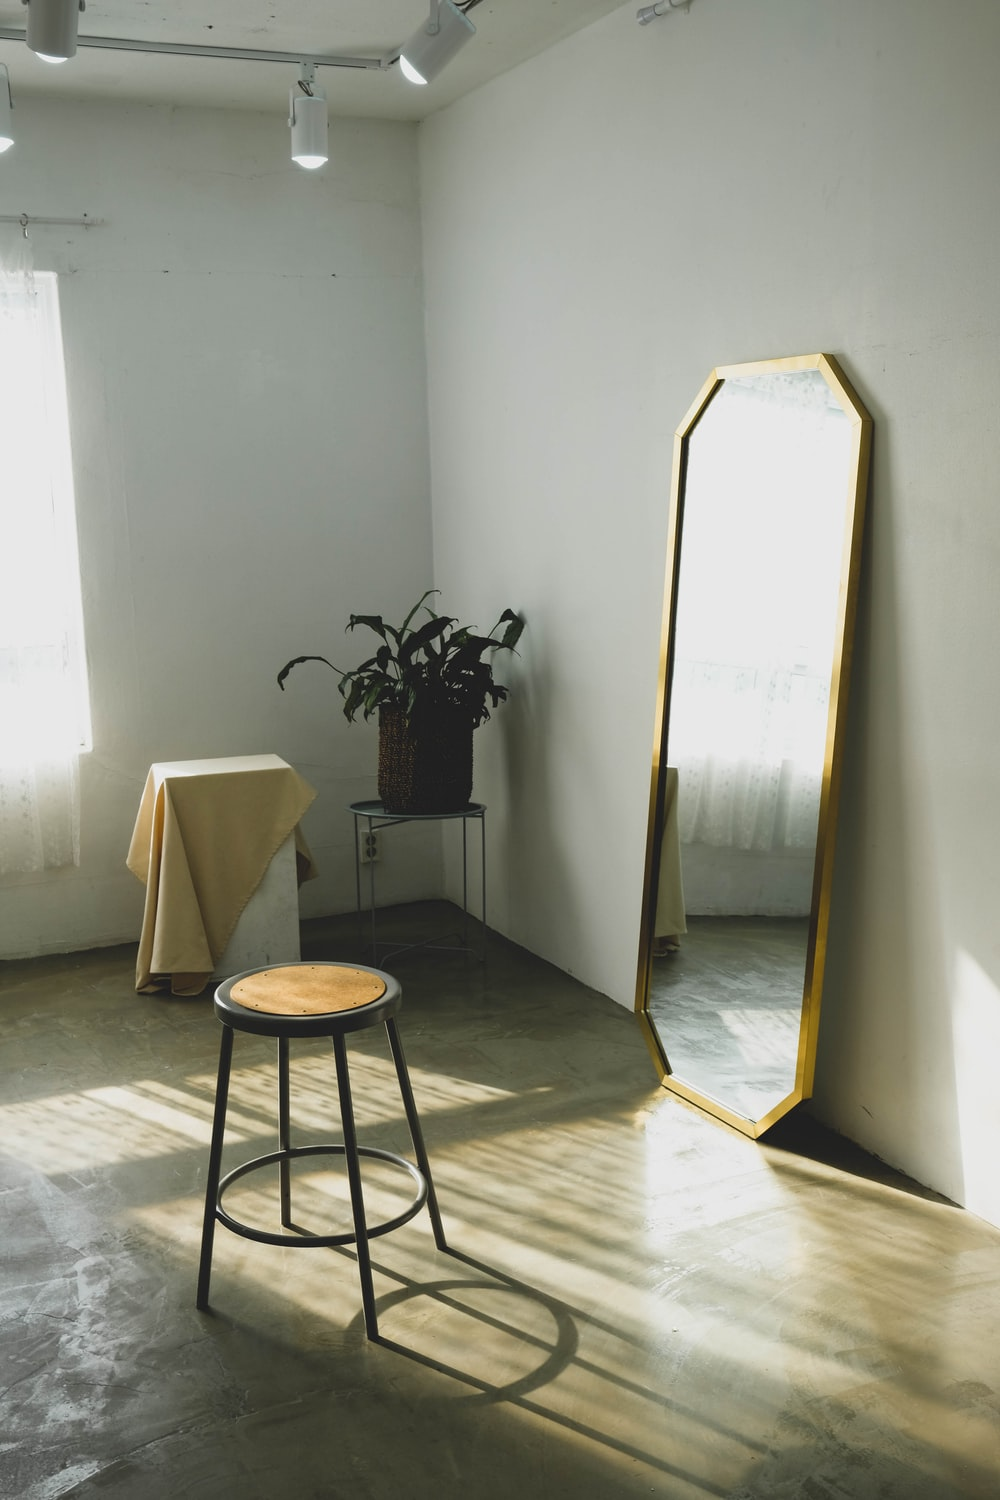 round brown wooden stool near leaning mirror